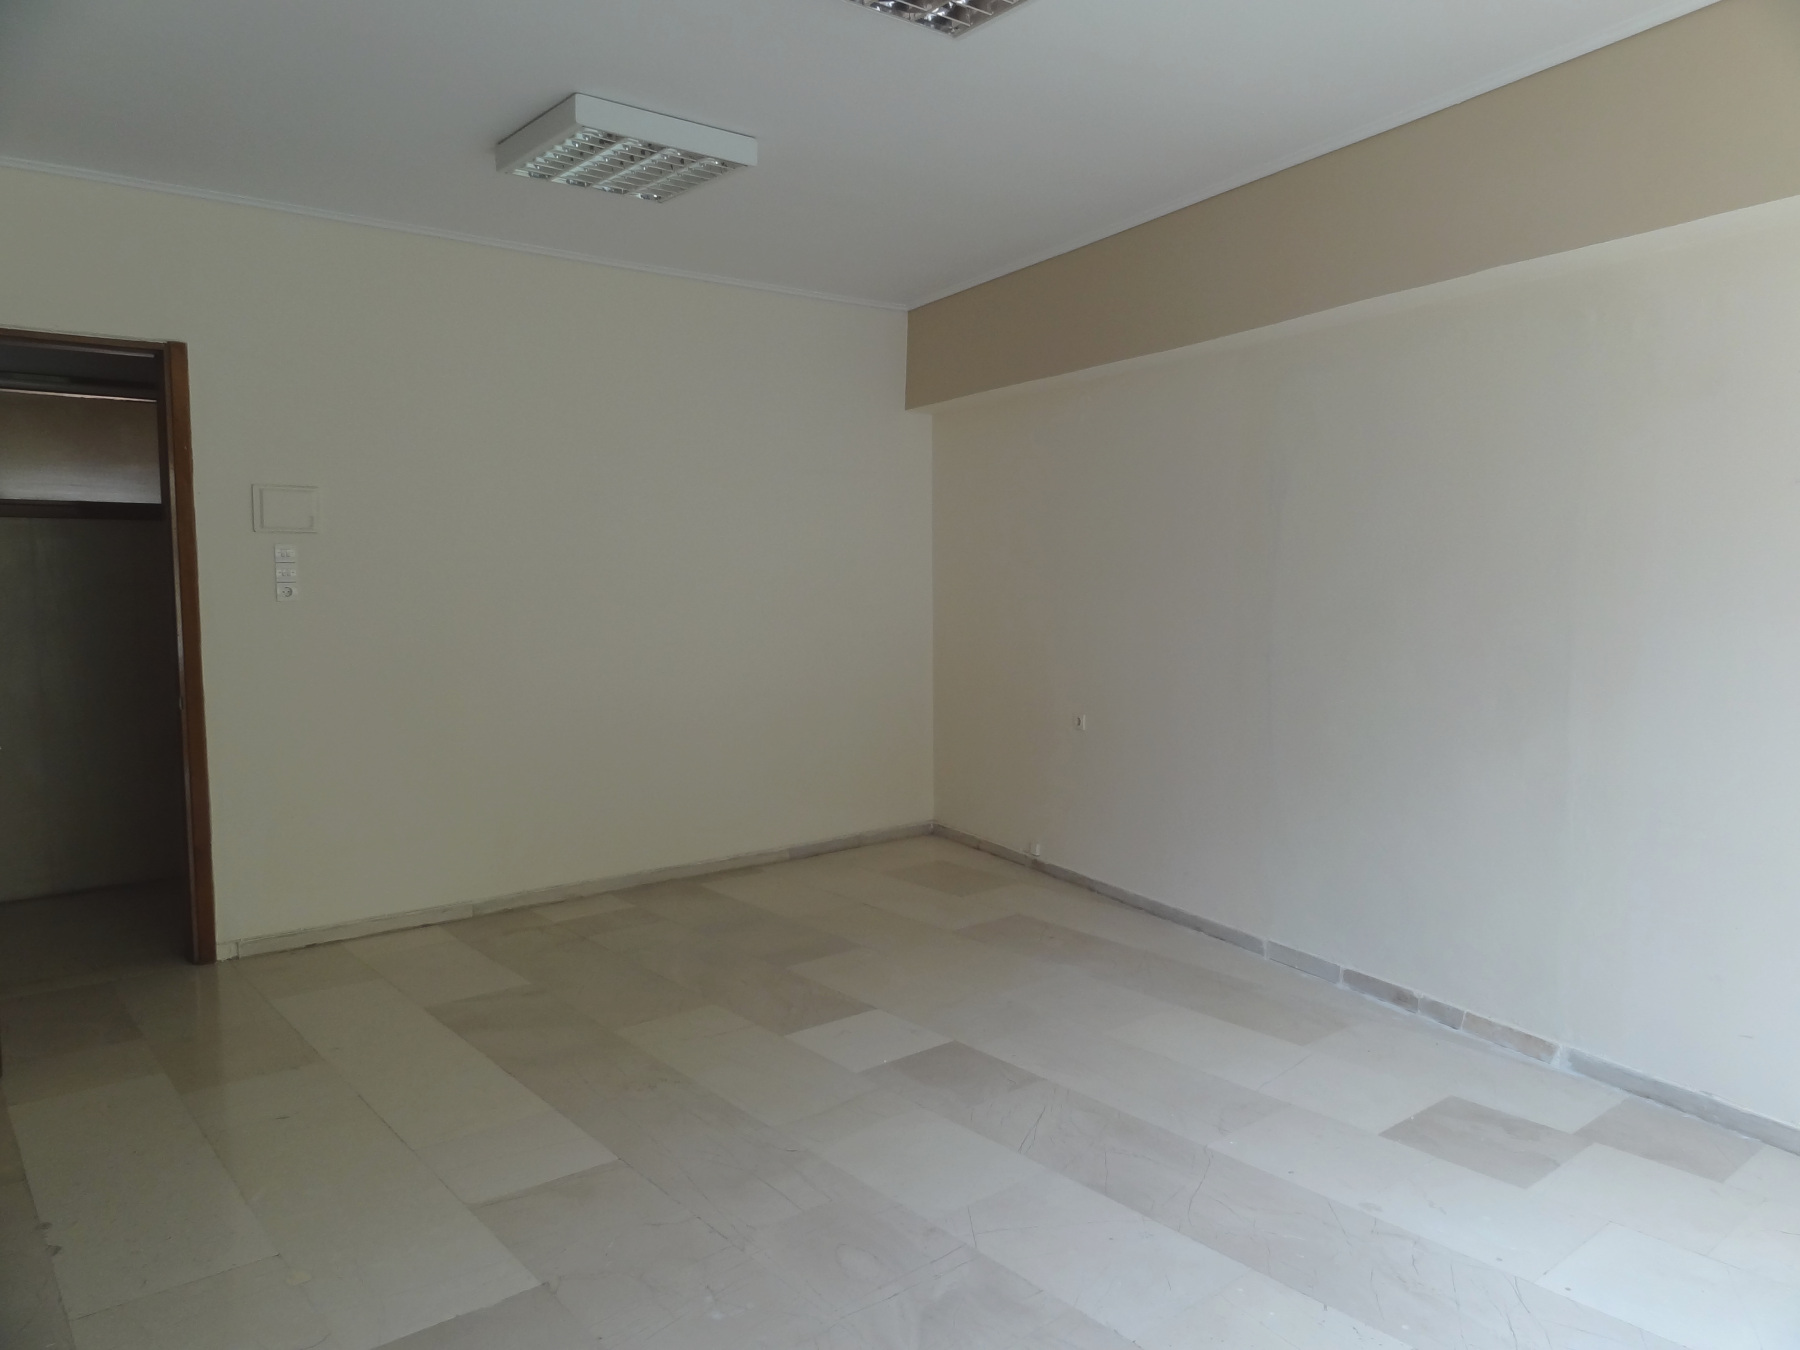 Commercial space for rent, office, 38 sq.m. 1st floor in the center of Ioannina near the courthouse